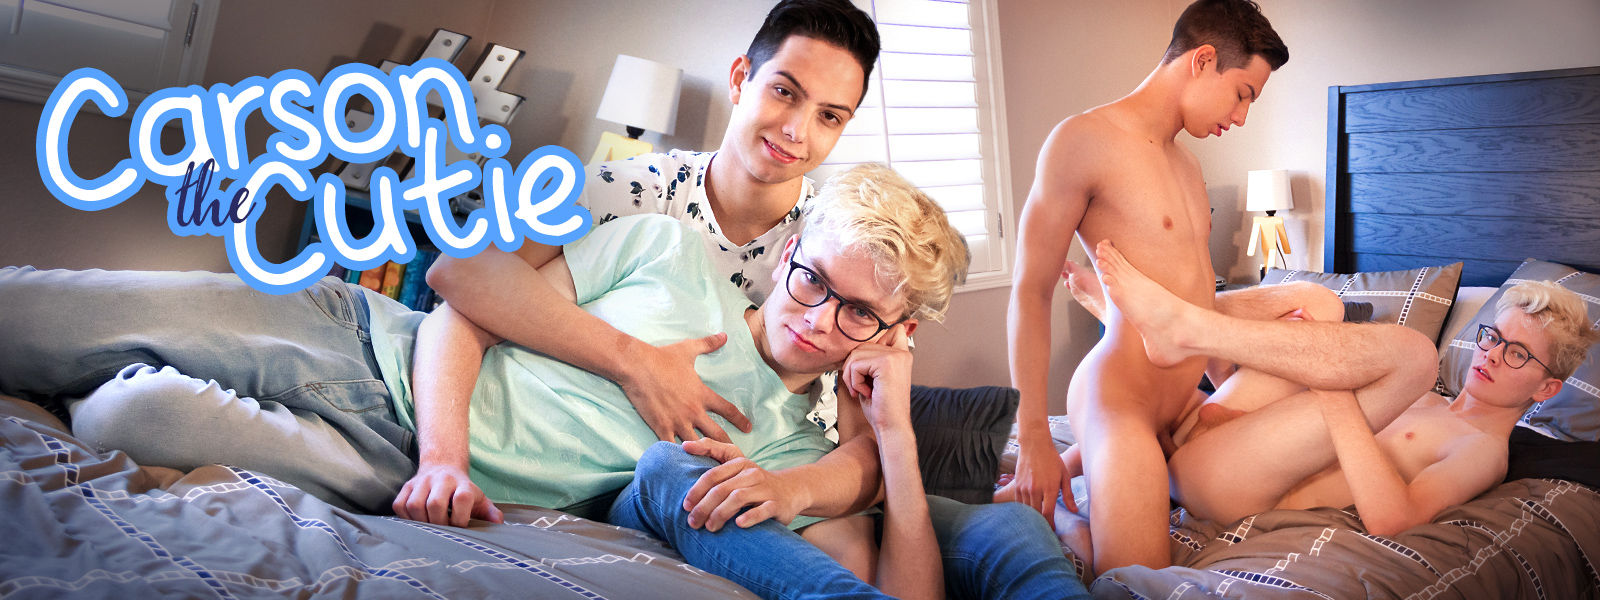 Young Twink Teens Teenage Smooth Sebastian Fox Rimming Kissing Gay Carson Peters Brunette Boys Blowjob Blonds Big Dick Bareback Anal Sex American  8Teenboy: Carson the Cutie (Sebastian Fox, Carson Peters)